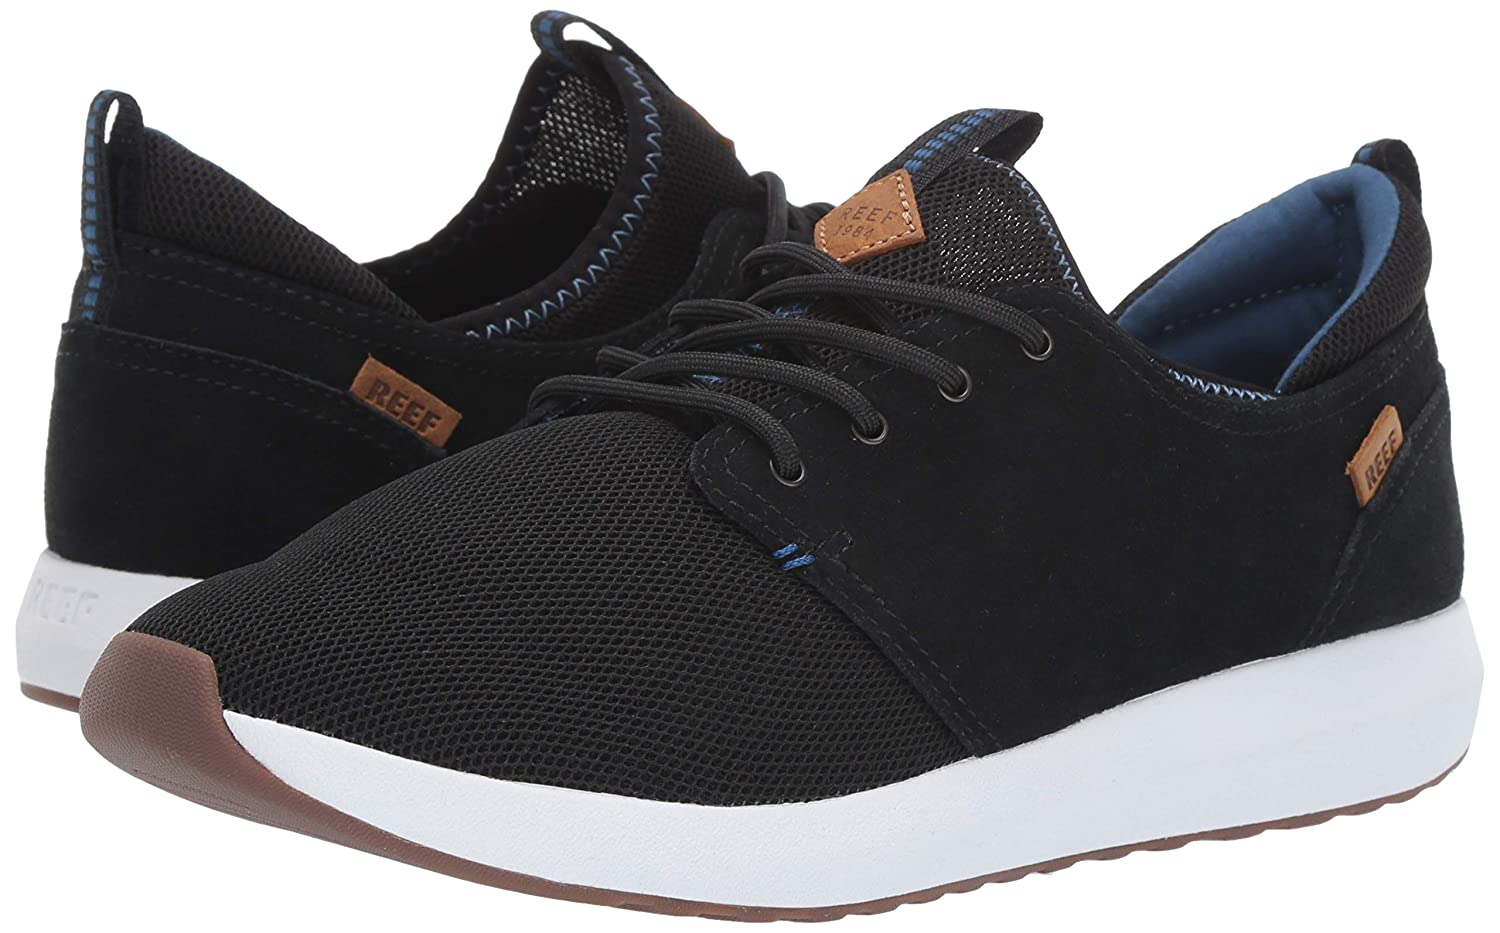 073658f08569d Reef Mens Cruiser Skate Shoe: Amazon.ca: Shoes & Handbags